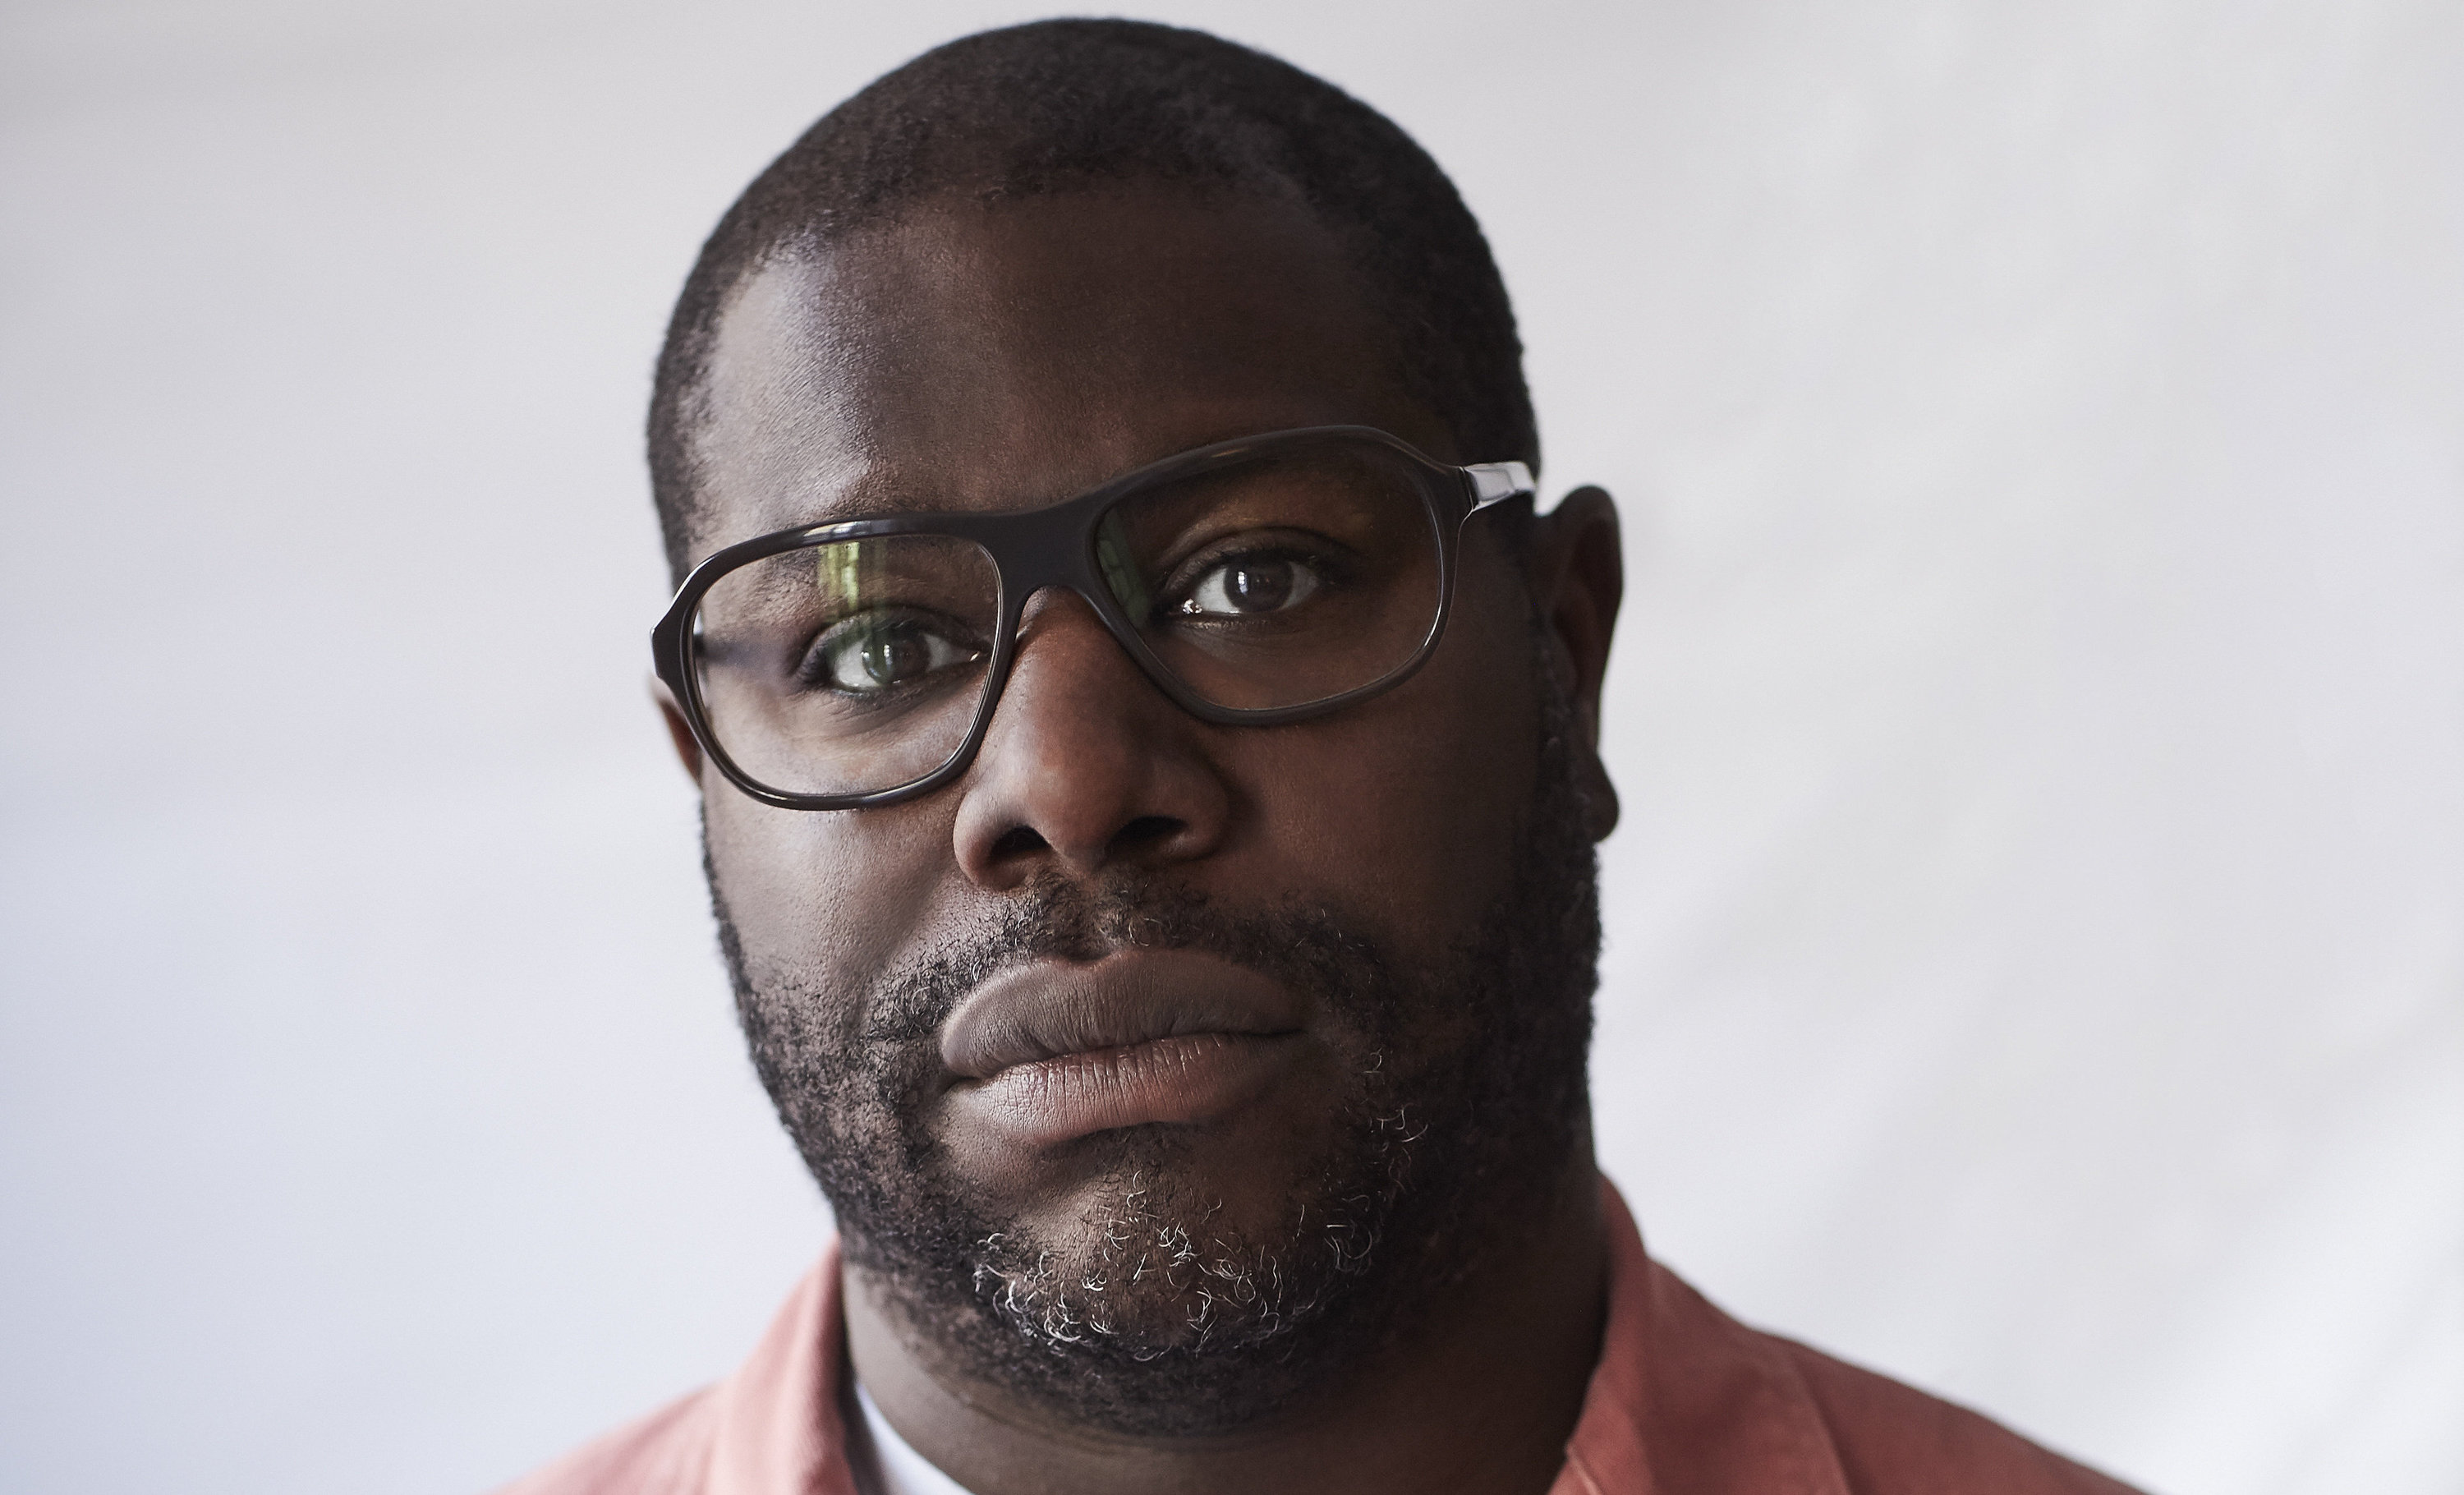 Steve McQueen on 'Widows', the 'difficult' label and working with Kanye West